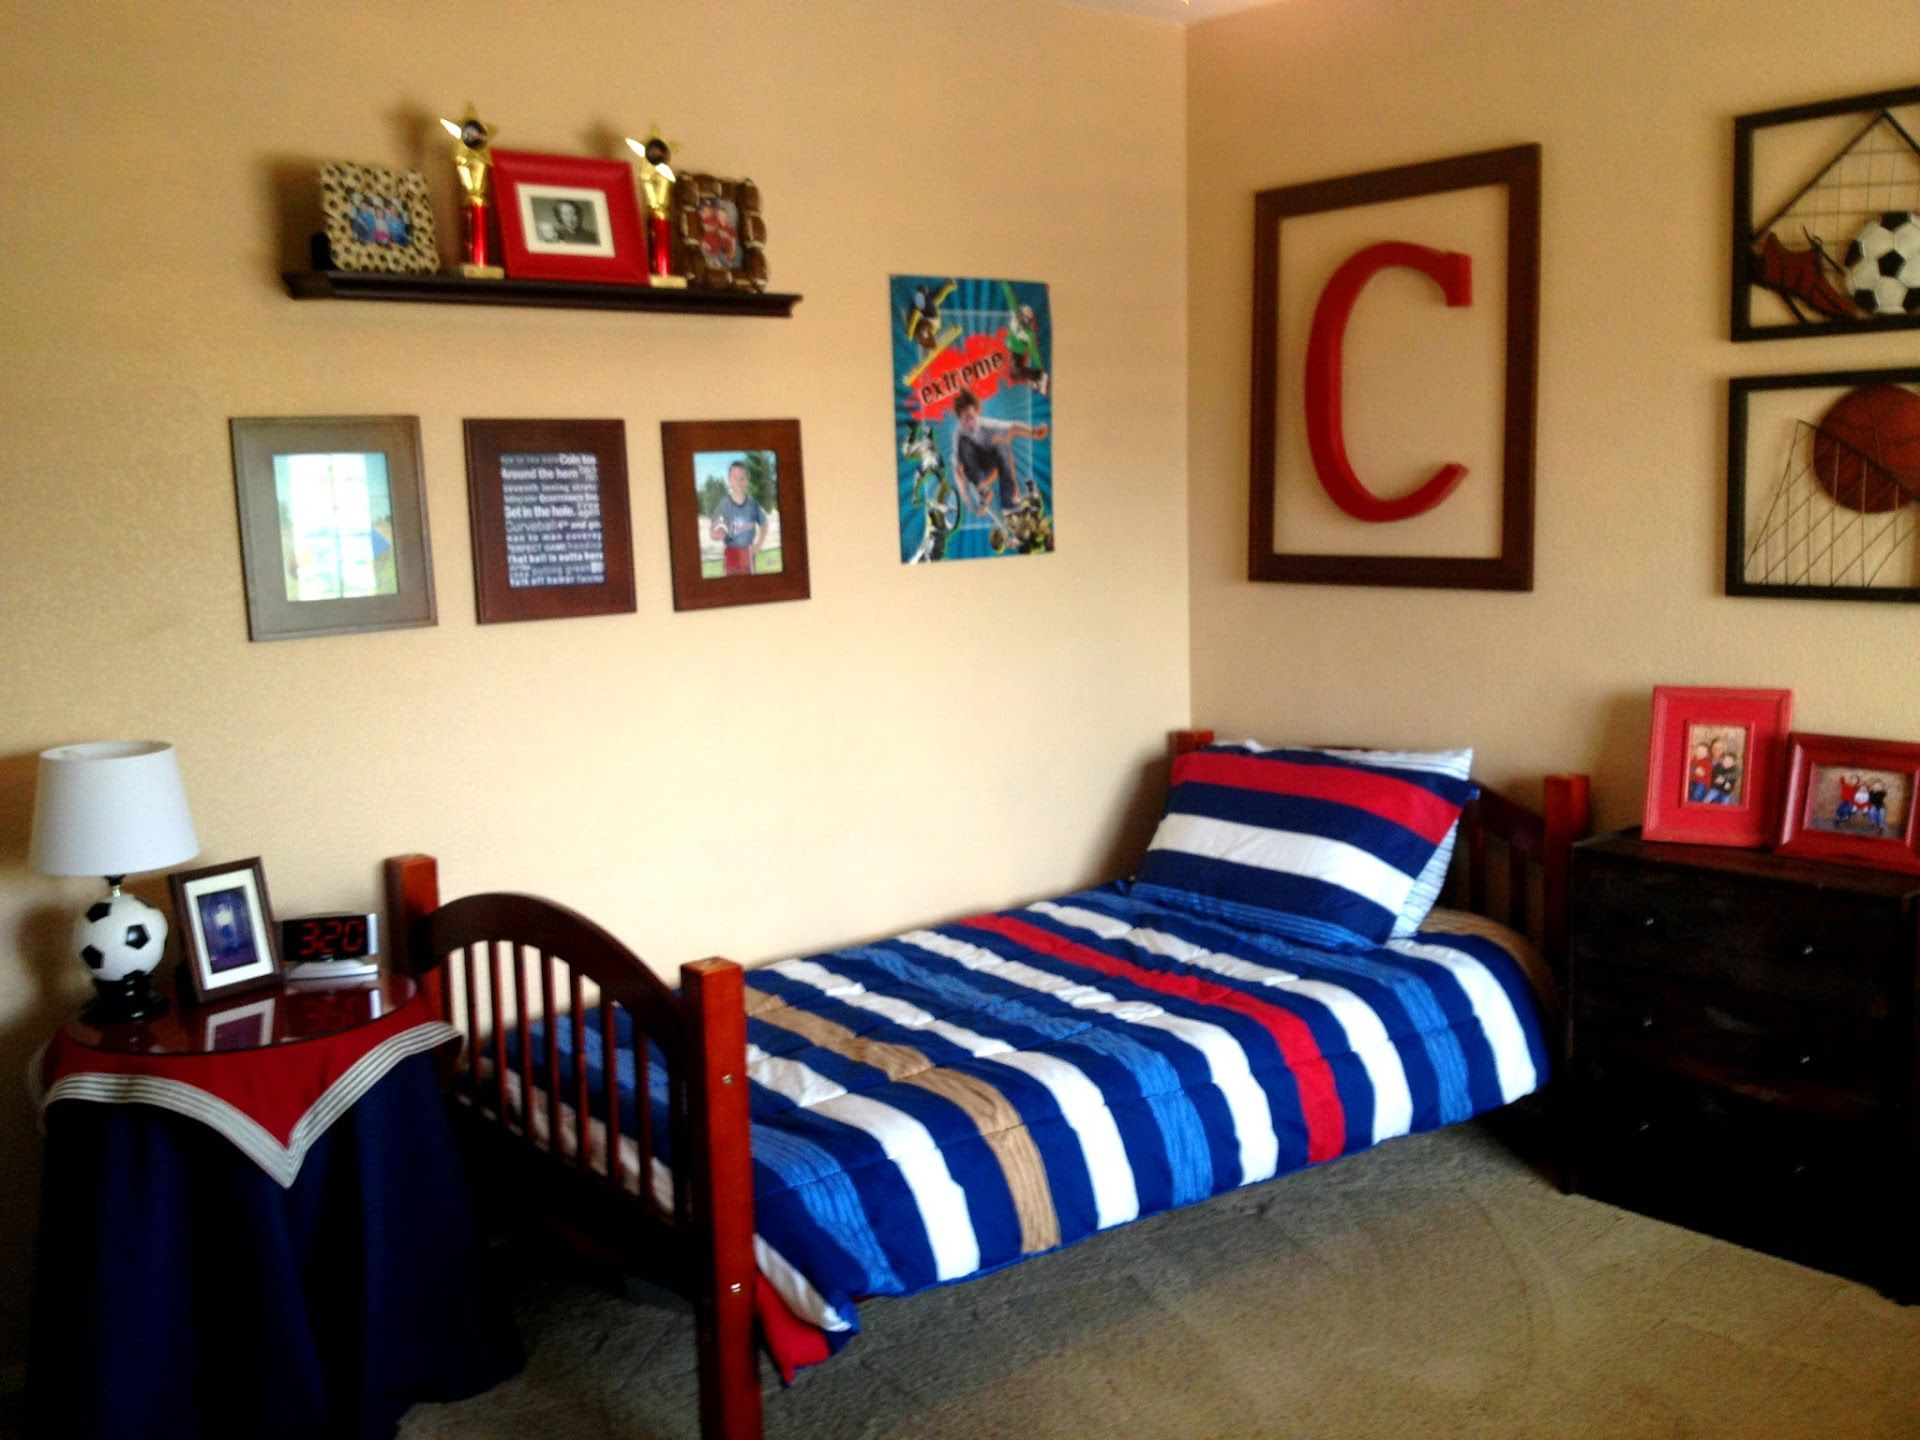 Boys bedroom designs sports - Red Blue Sports Themed Boys Bedroom With Blue Stripes Pillow And Bed Cover On Red Wooden